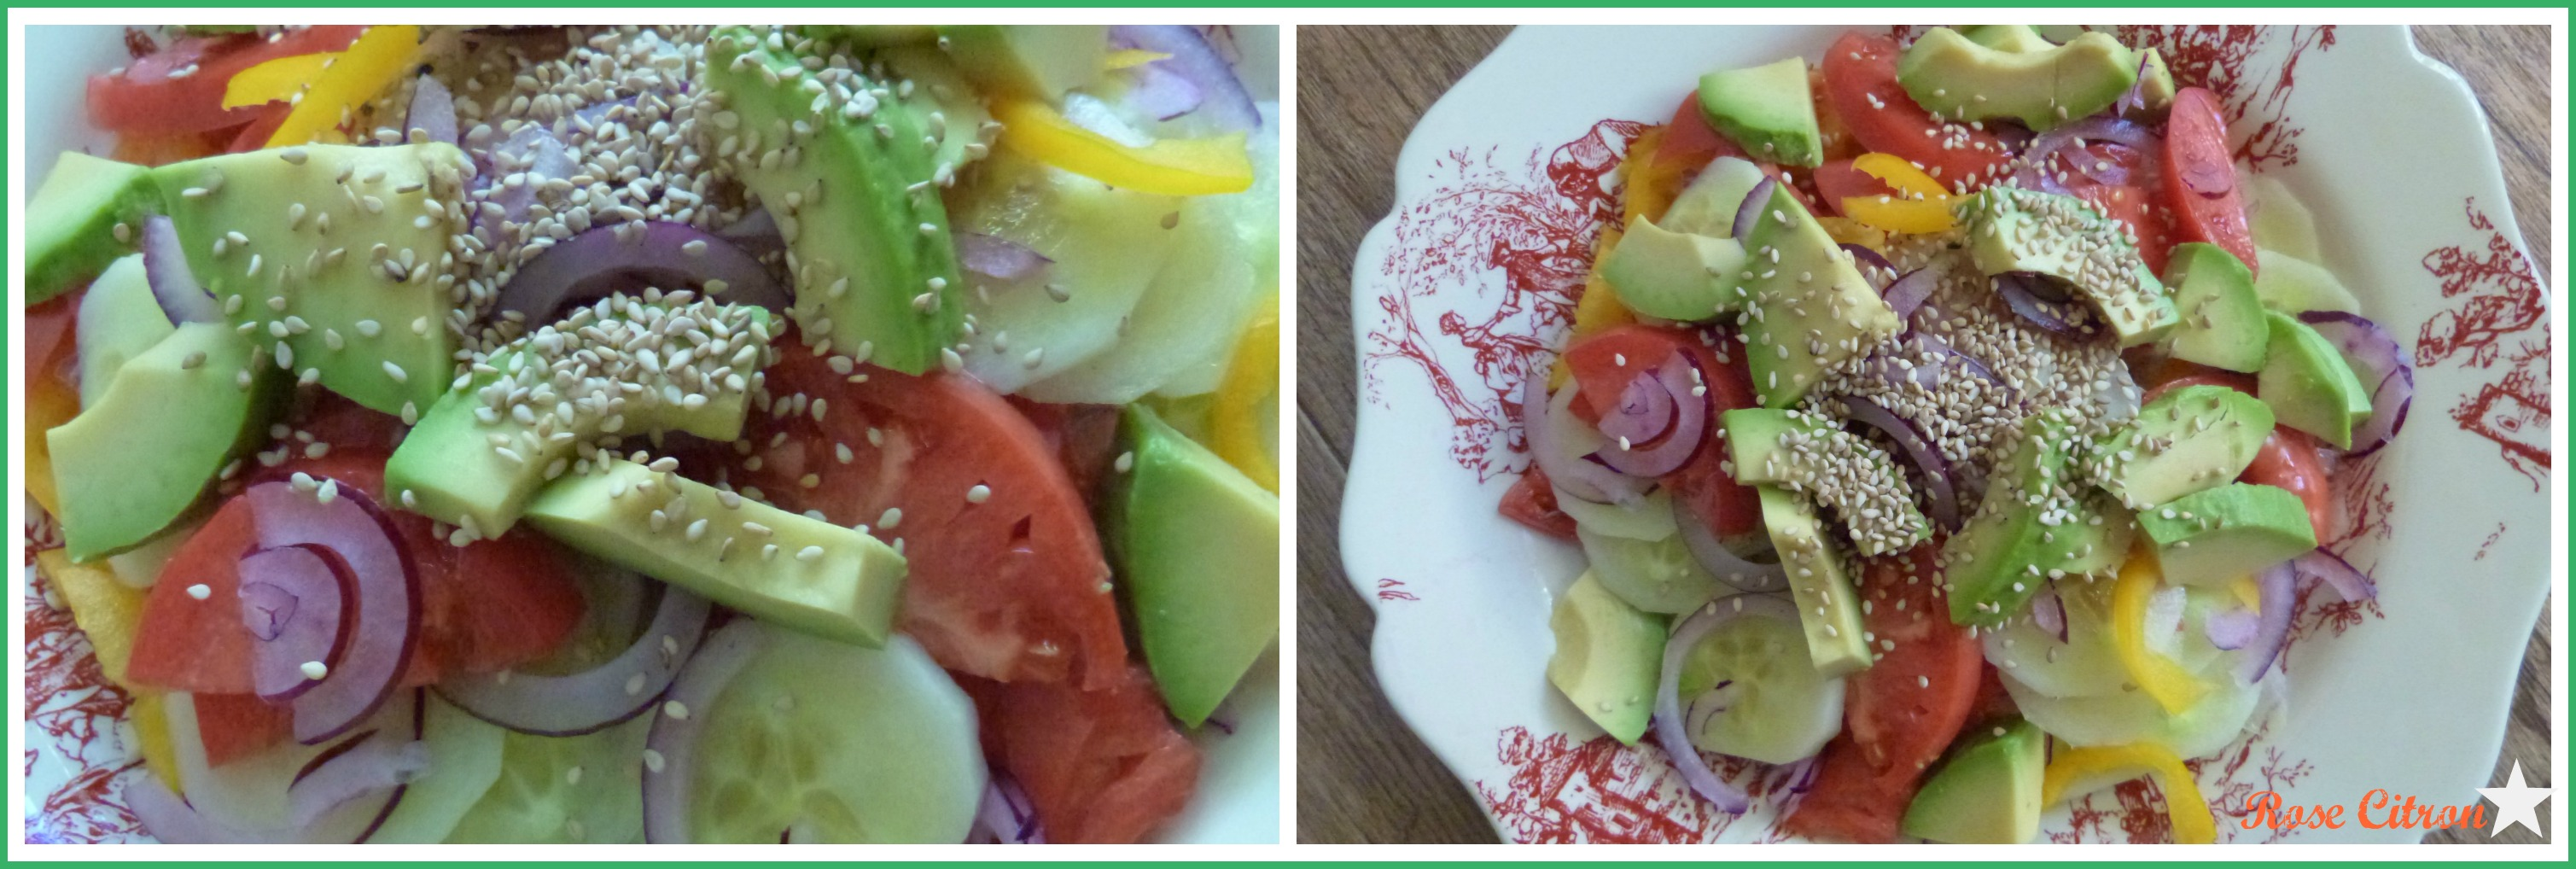 Collage salade